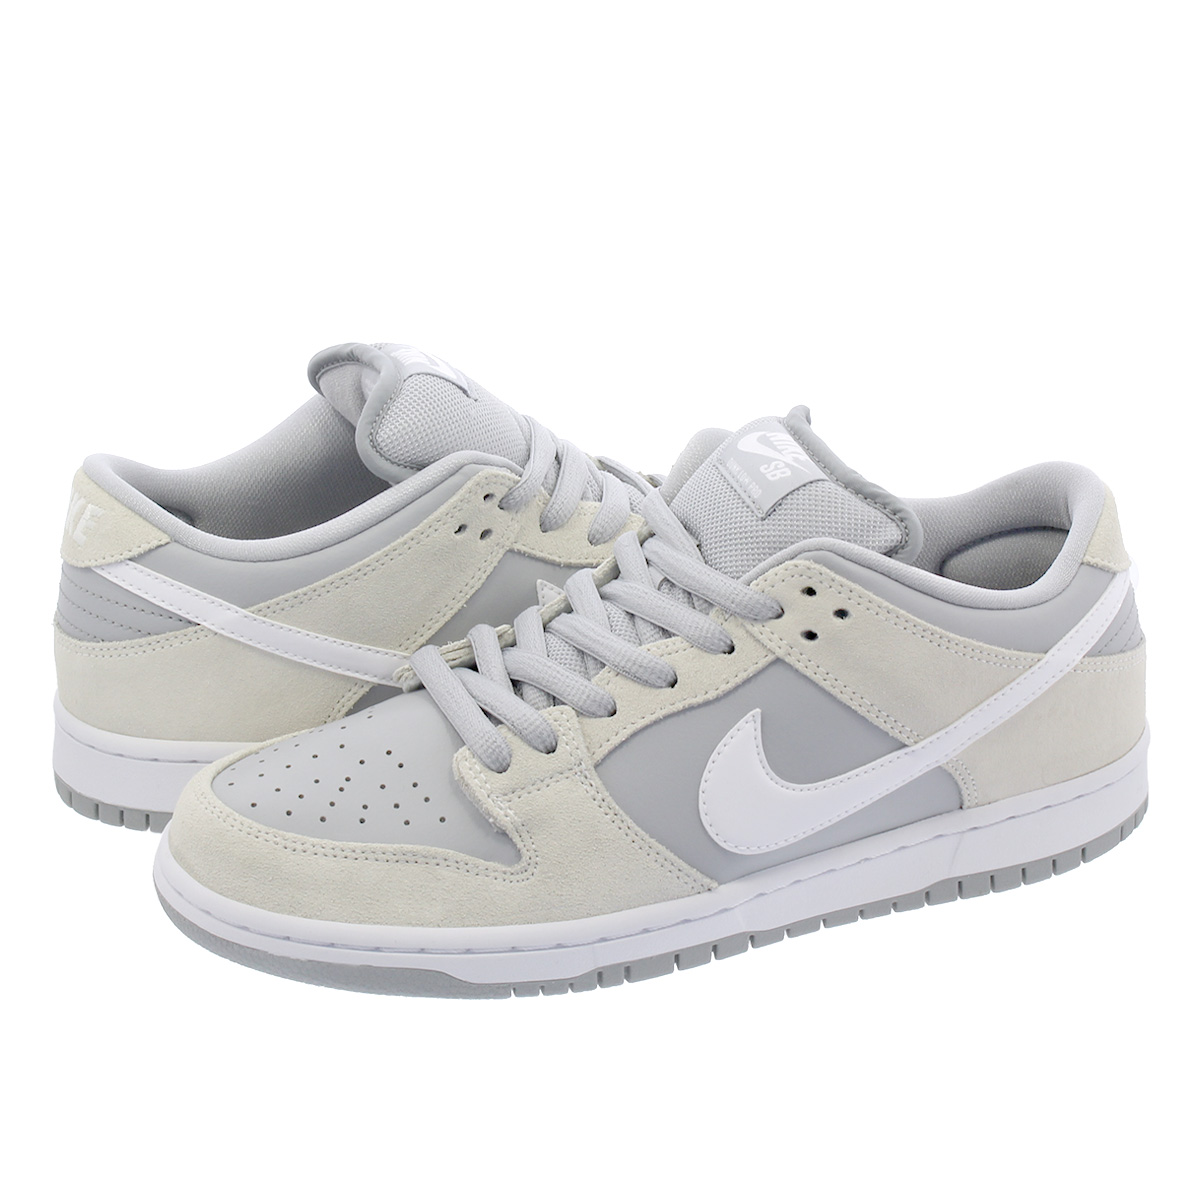 super popular 36ce1 fee55 NIKE SB DUNK LOW TRD Nike SB dunk low TRD SUMMIT WHITE/WHITE/WOLF GREY  ar0778-110